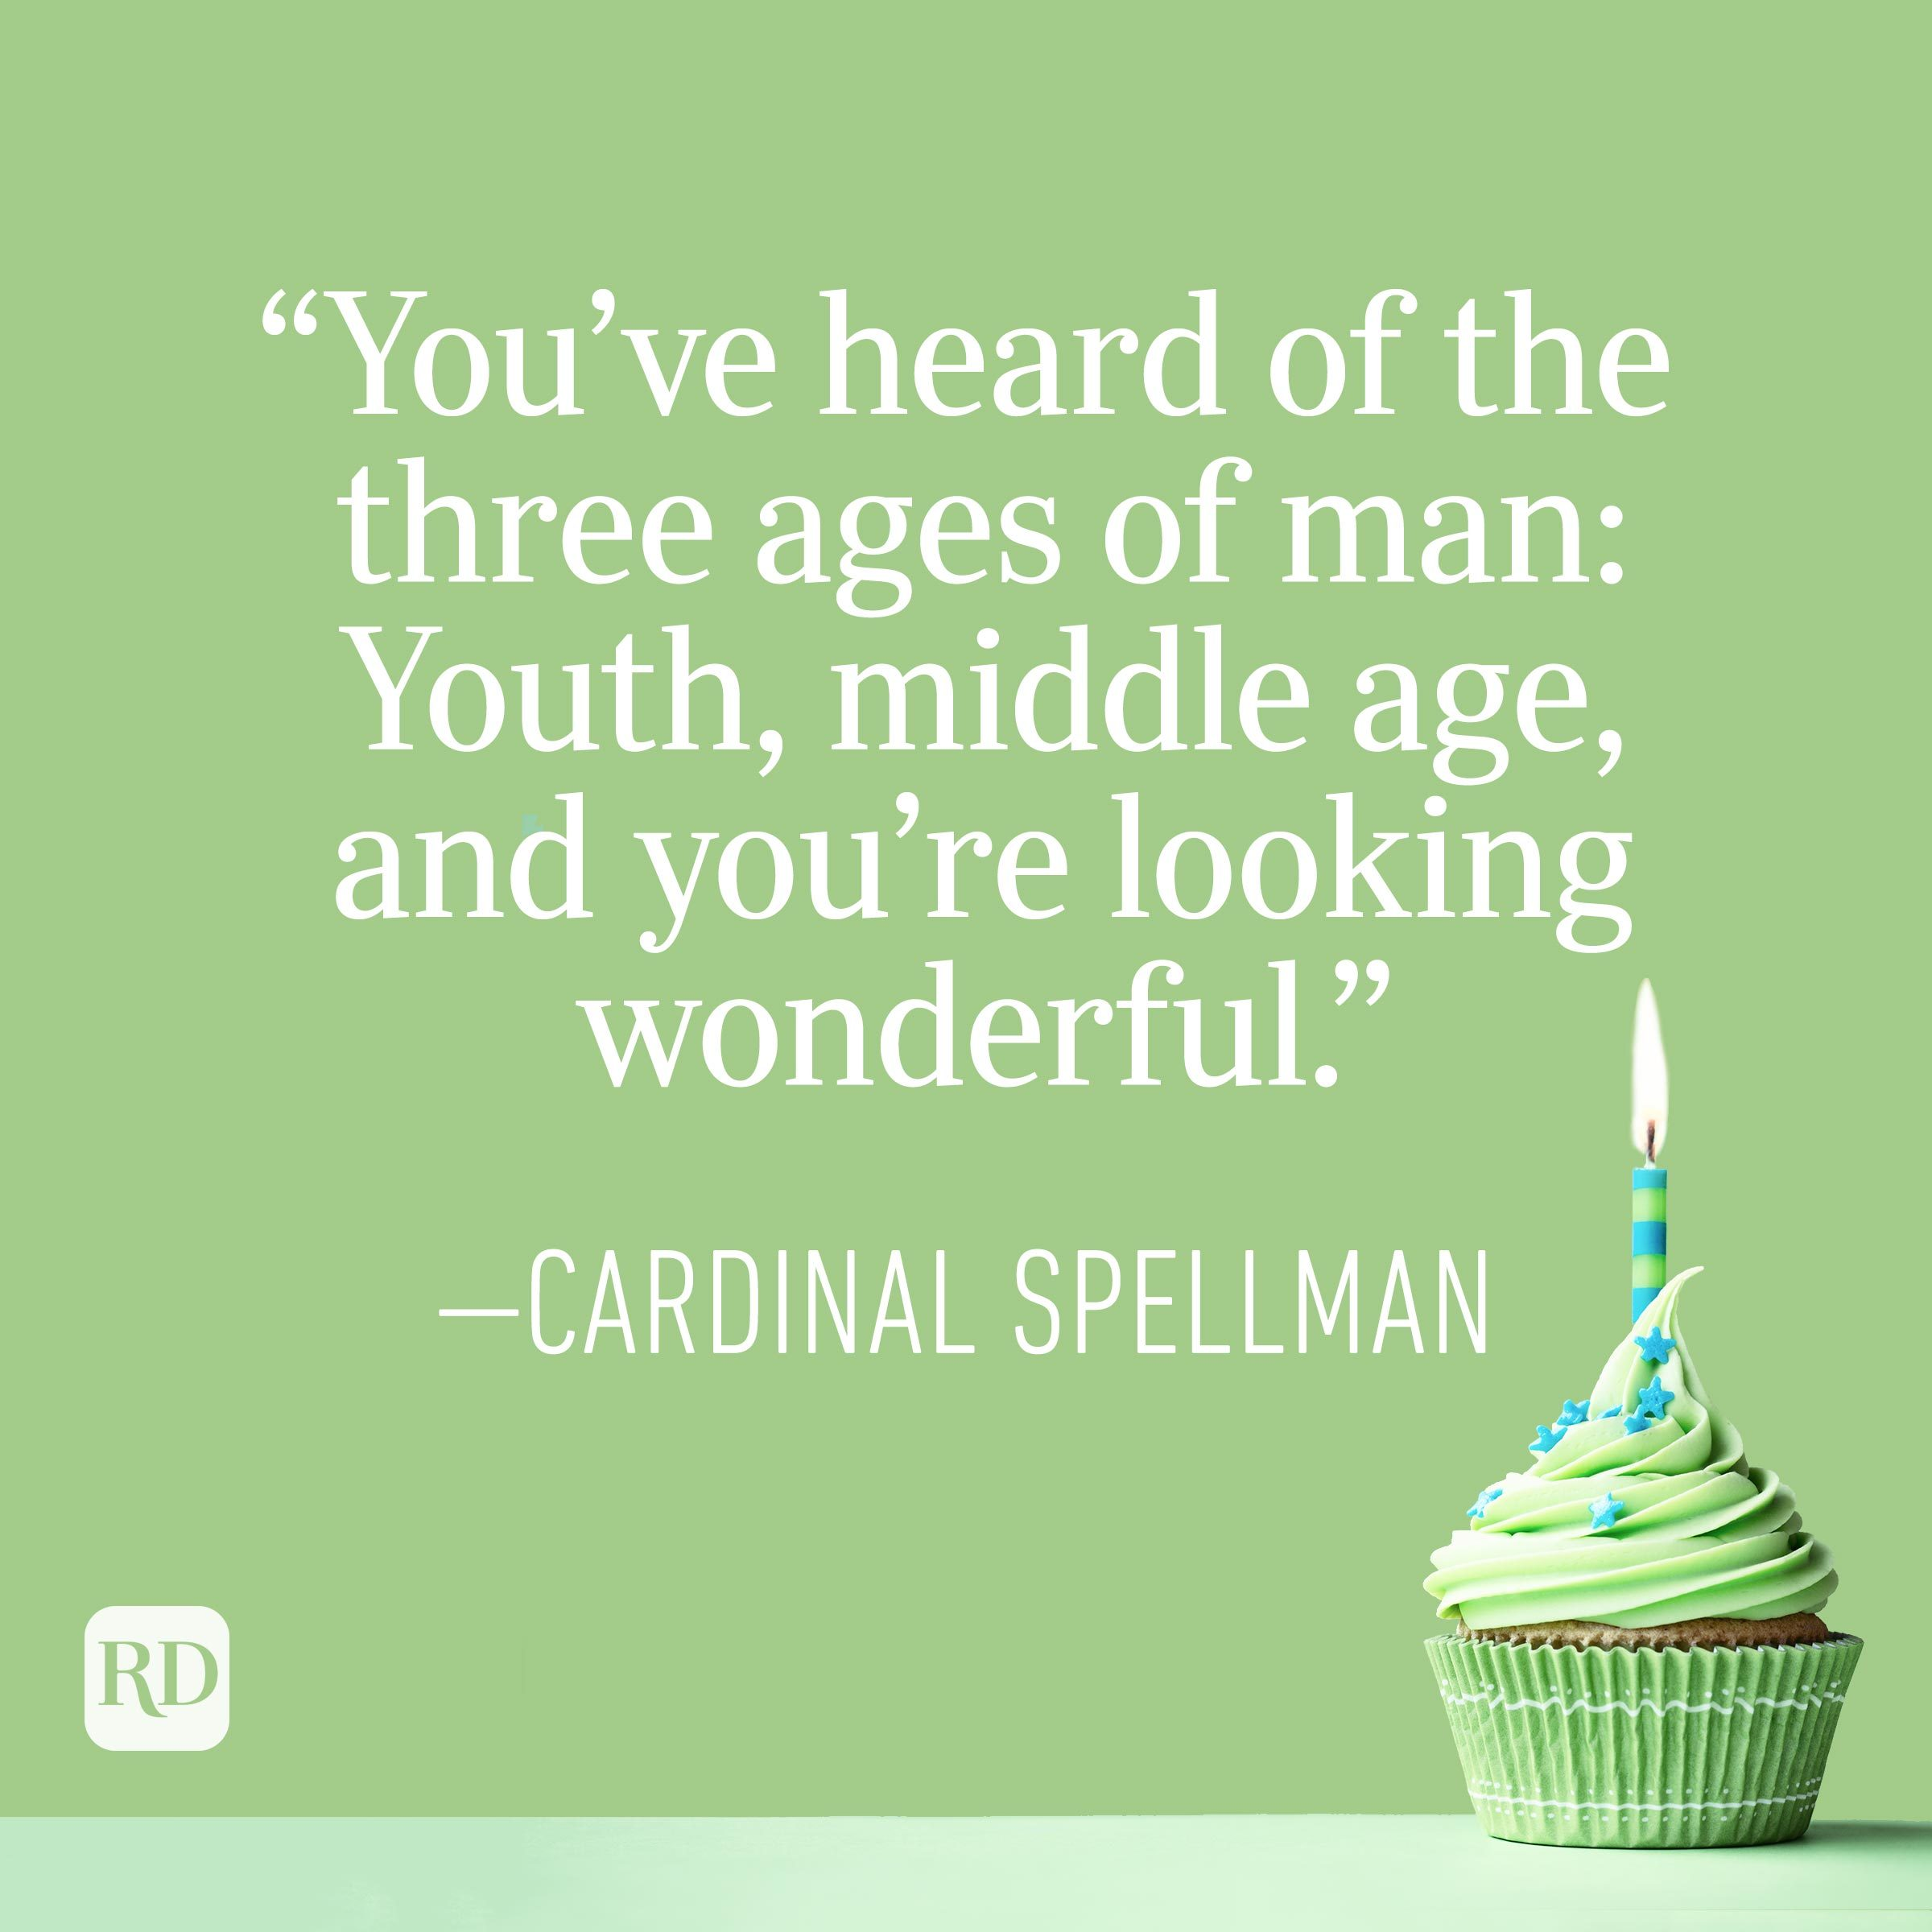 """""""You've heard of the three ages of man: Youth, middle age, and you're looking wonderful."""" —Cardinal Spellman"""